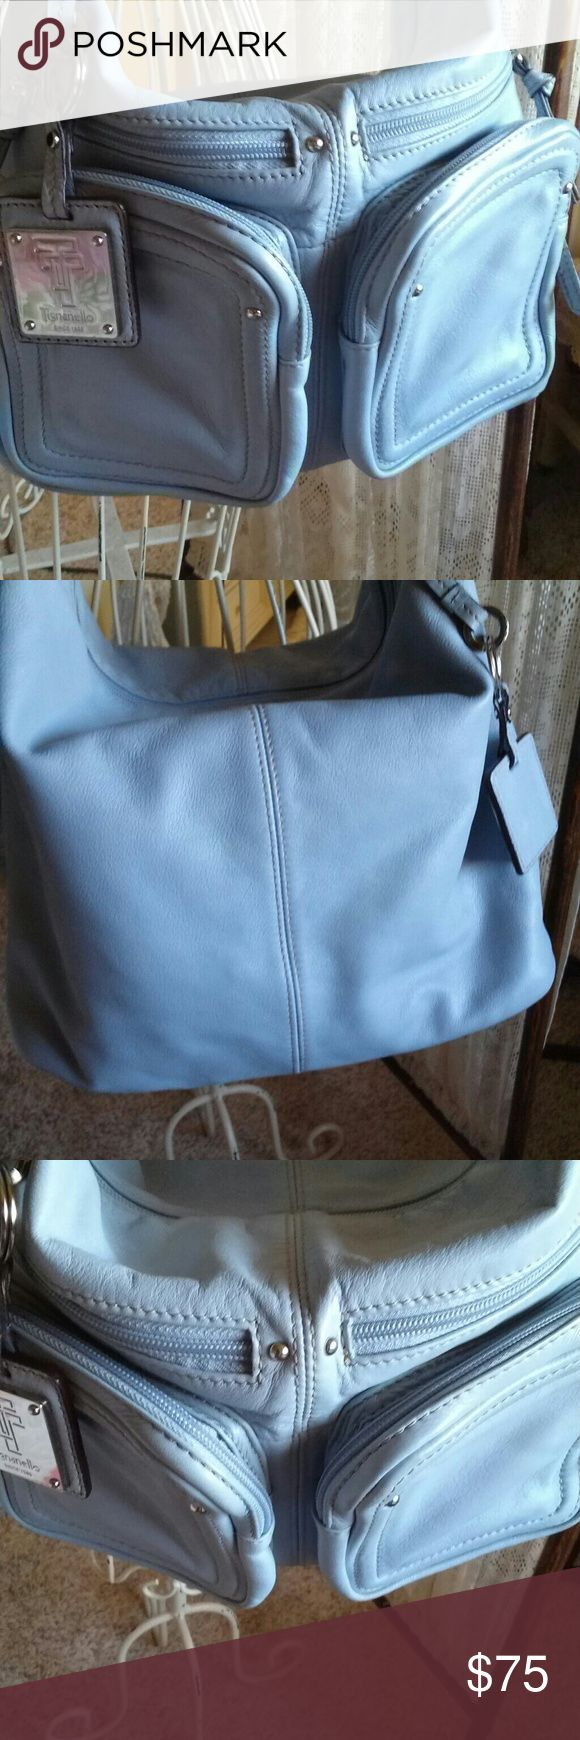 Tignanello handbag Beautiful baby blue cargo pockets new condition butter-soft leather comes with detachable key ring lots of room & pockets Tignanello Bags Shoulder Bags